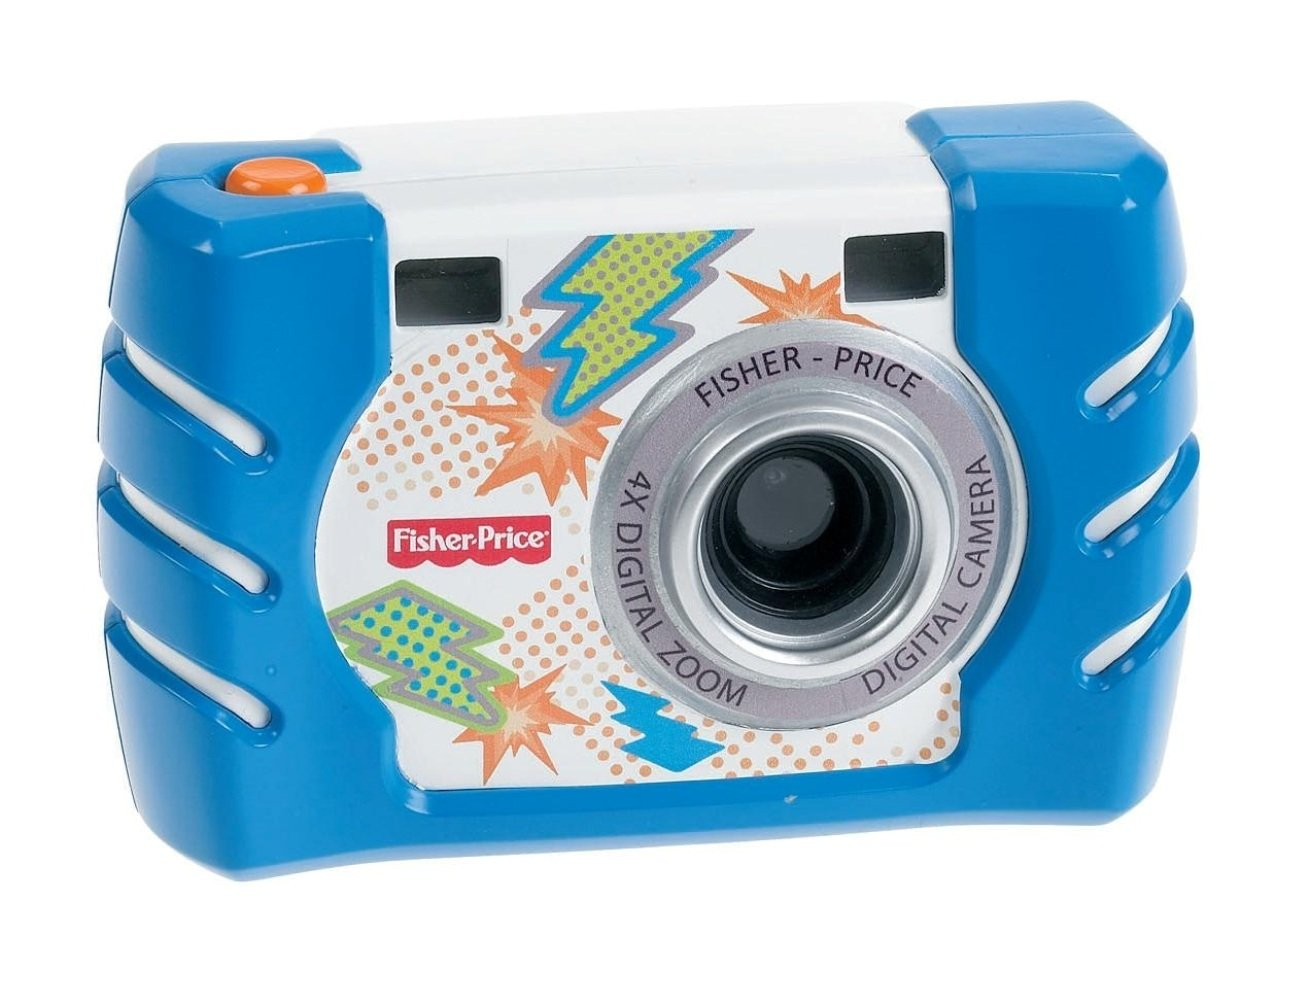 Fisher Price Kids Tough Digital Camera Slim Blue (W1459)